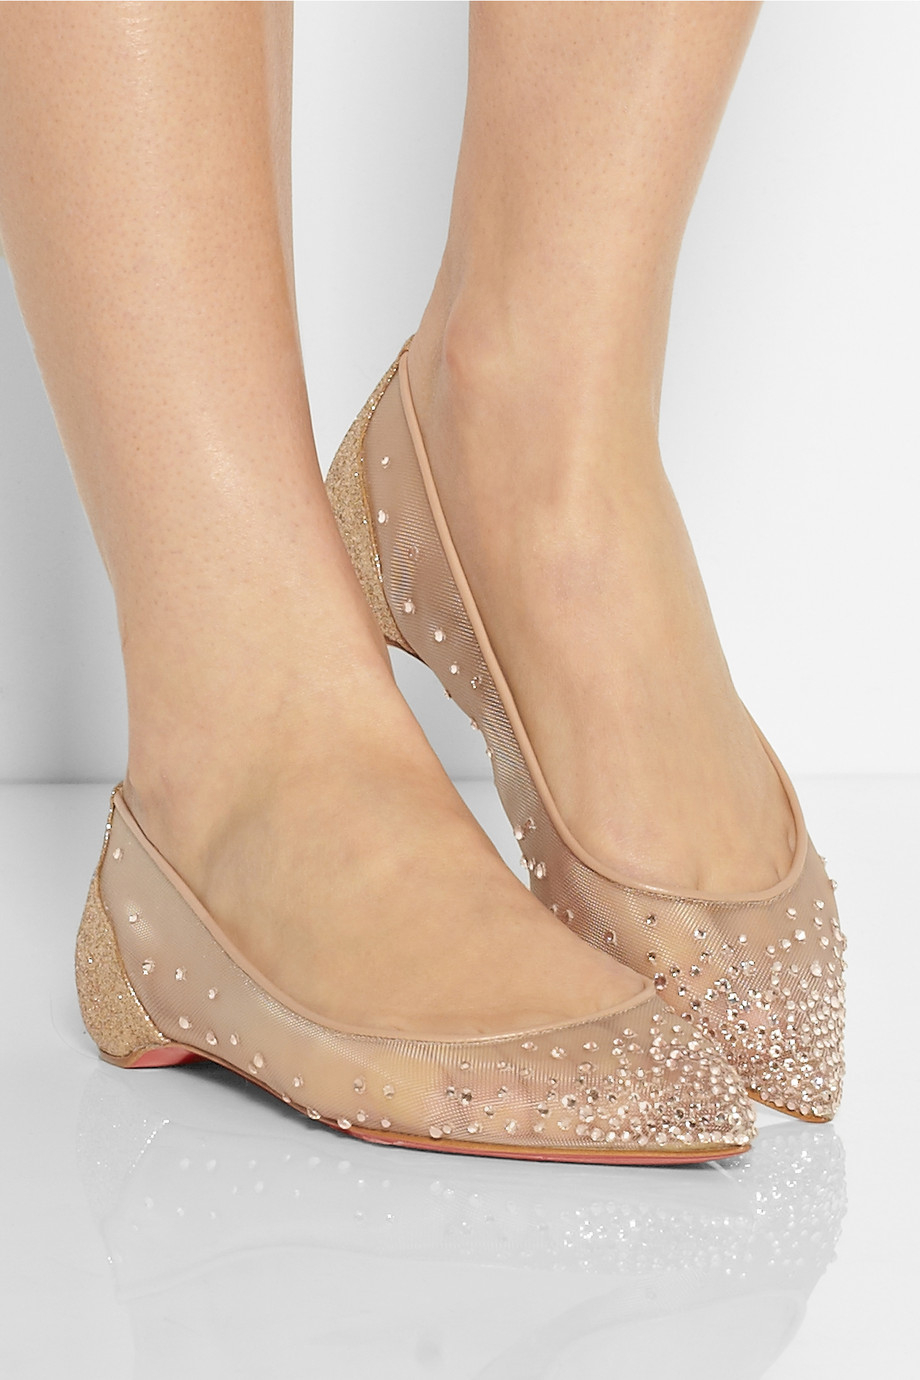 Christian Louboutin Body Strass Embellished Mesh Point Toe